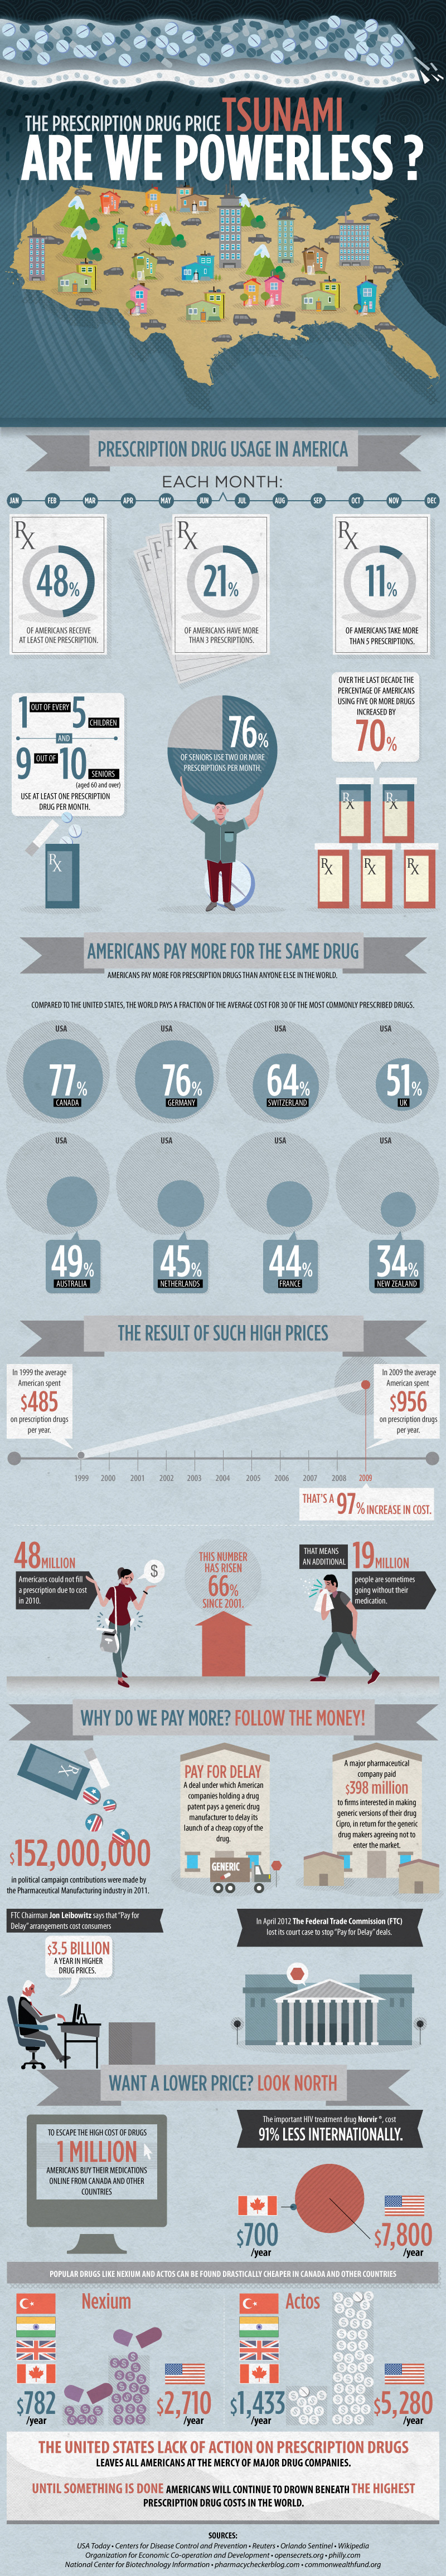 Americans pay more for prescription drugs than anyone else in the world. No surprise this, but an interesting infographic by a Canadian drug website.